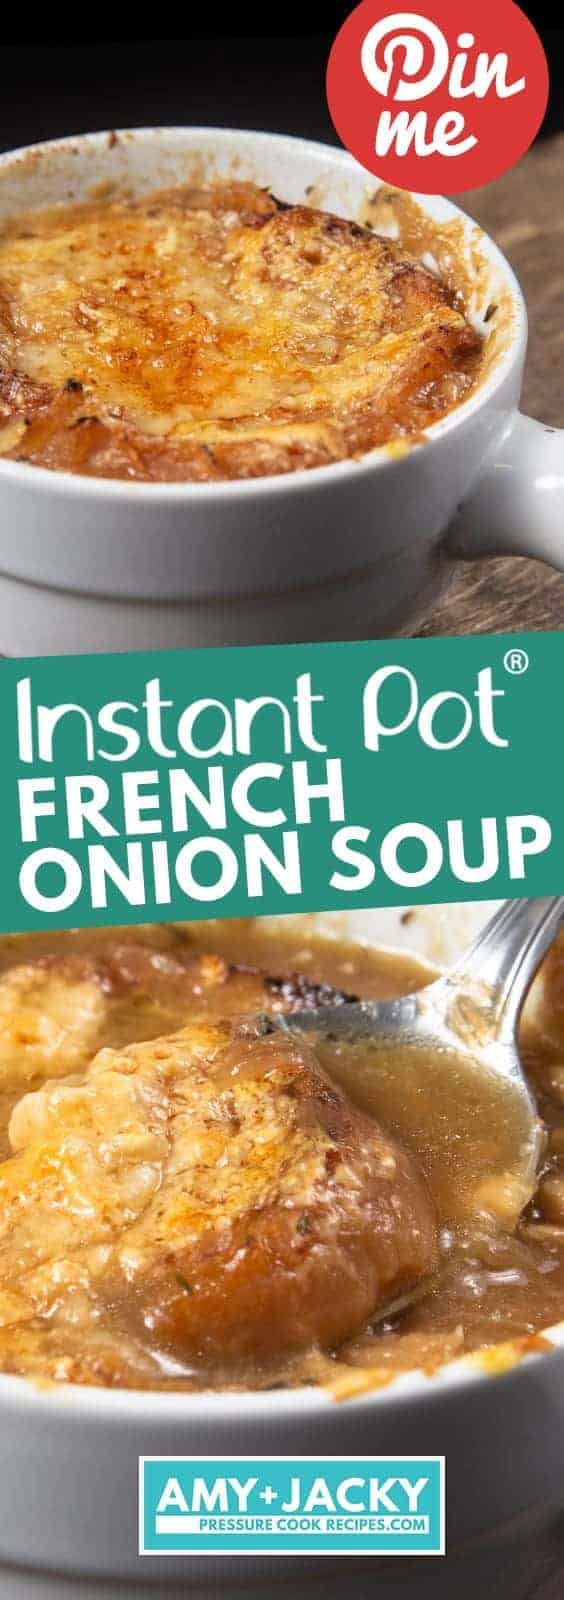 Instant Pot French Onion Soup | Pressure Cooker French Onion Soup | Instapot French Onion Soup | Instant Pot Soup | Pressure Cooker Soup | Instant Pot Recipes | Pressure Cooker Recipes #soup #recipes